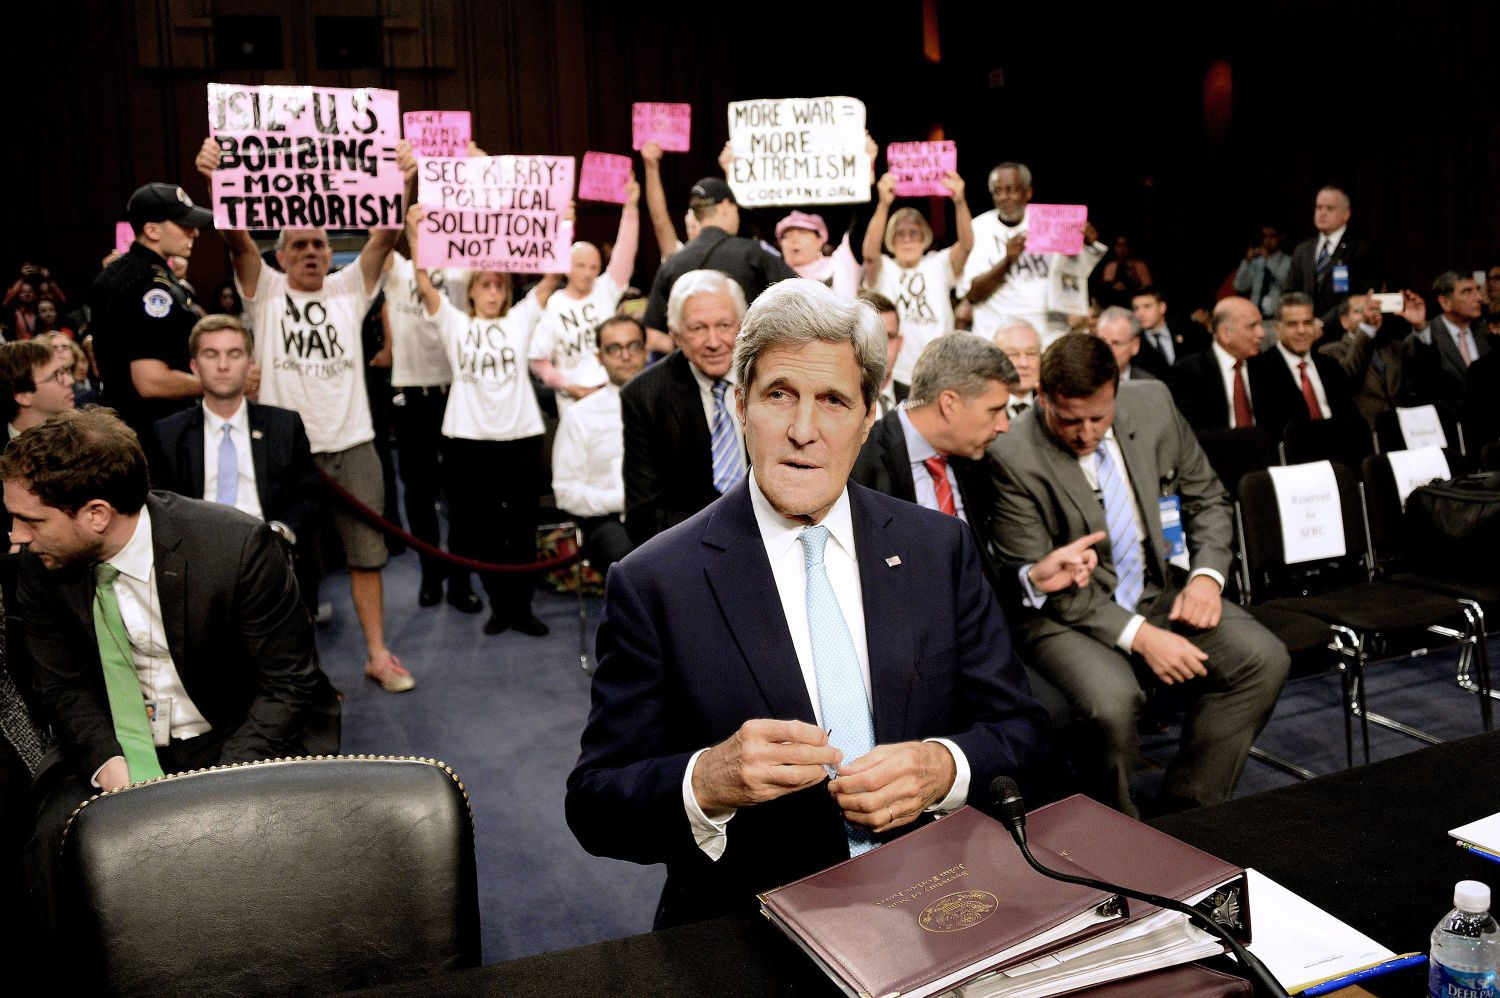 Code Pink for Peace members protest against U.S. military action in Iraq as Secretary of State John Kerry testifies at a Senate Foreign Relations Committee hearing on the United States strategy to defeat the Islamic State in Iraq and the Levant (ISIL) on Wednesday, Sept. 17, 2014, in Washington, D.C. (Olivier Douliery/Abaca Press/MCT)